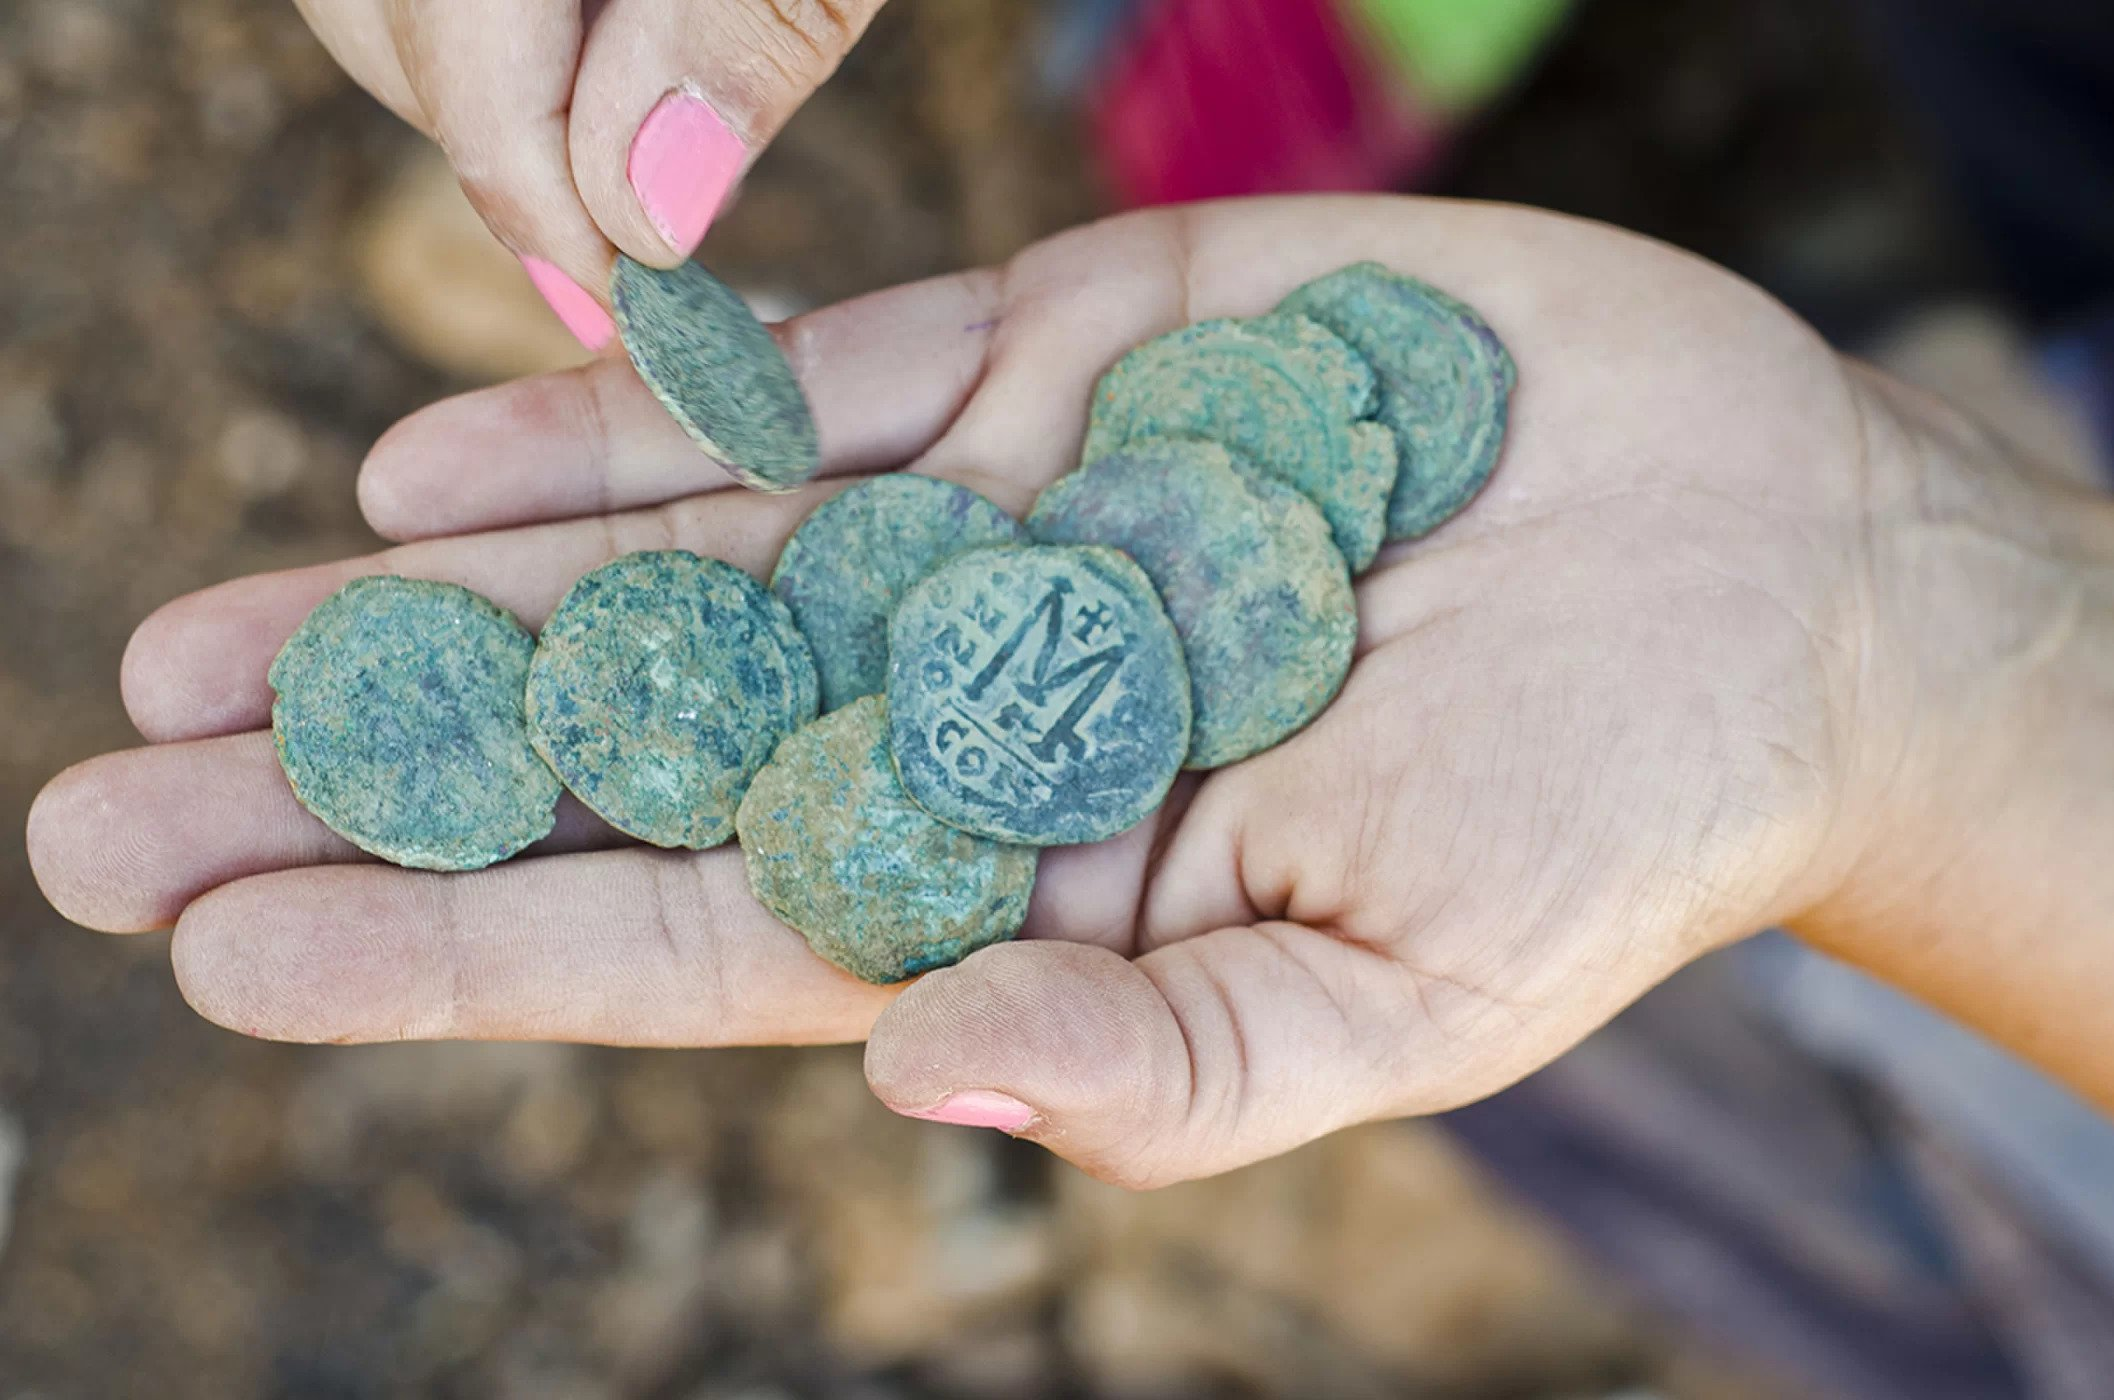 Nine bronze coins dating to the Byzantine period were found in the remains of a settlement near a highway to Jerusalem.